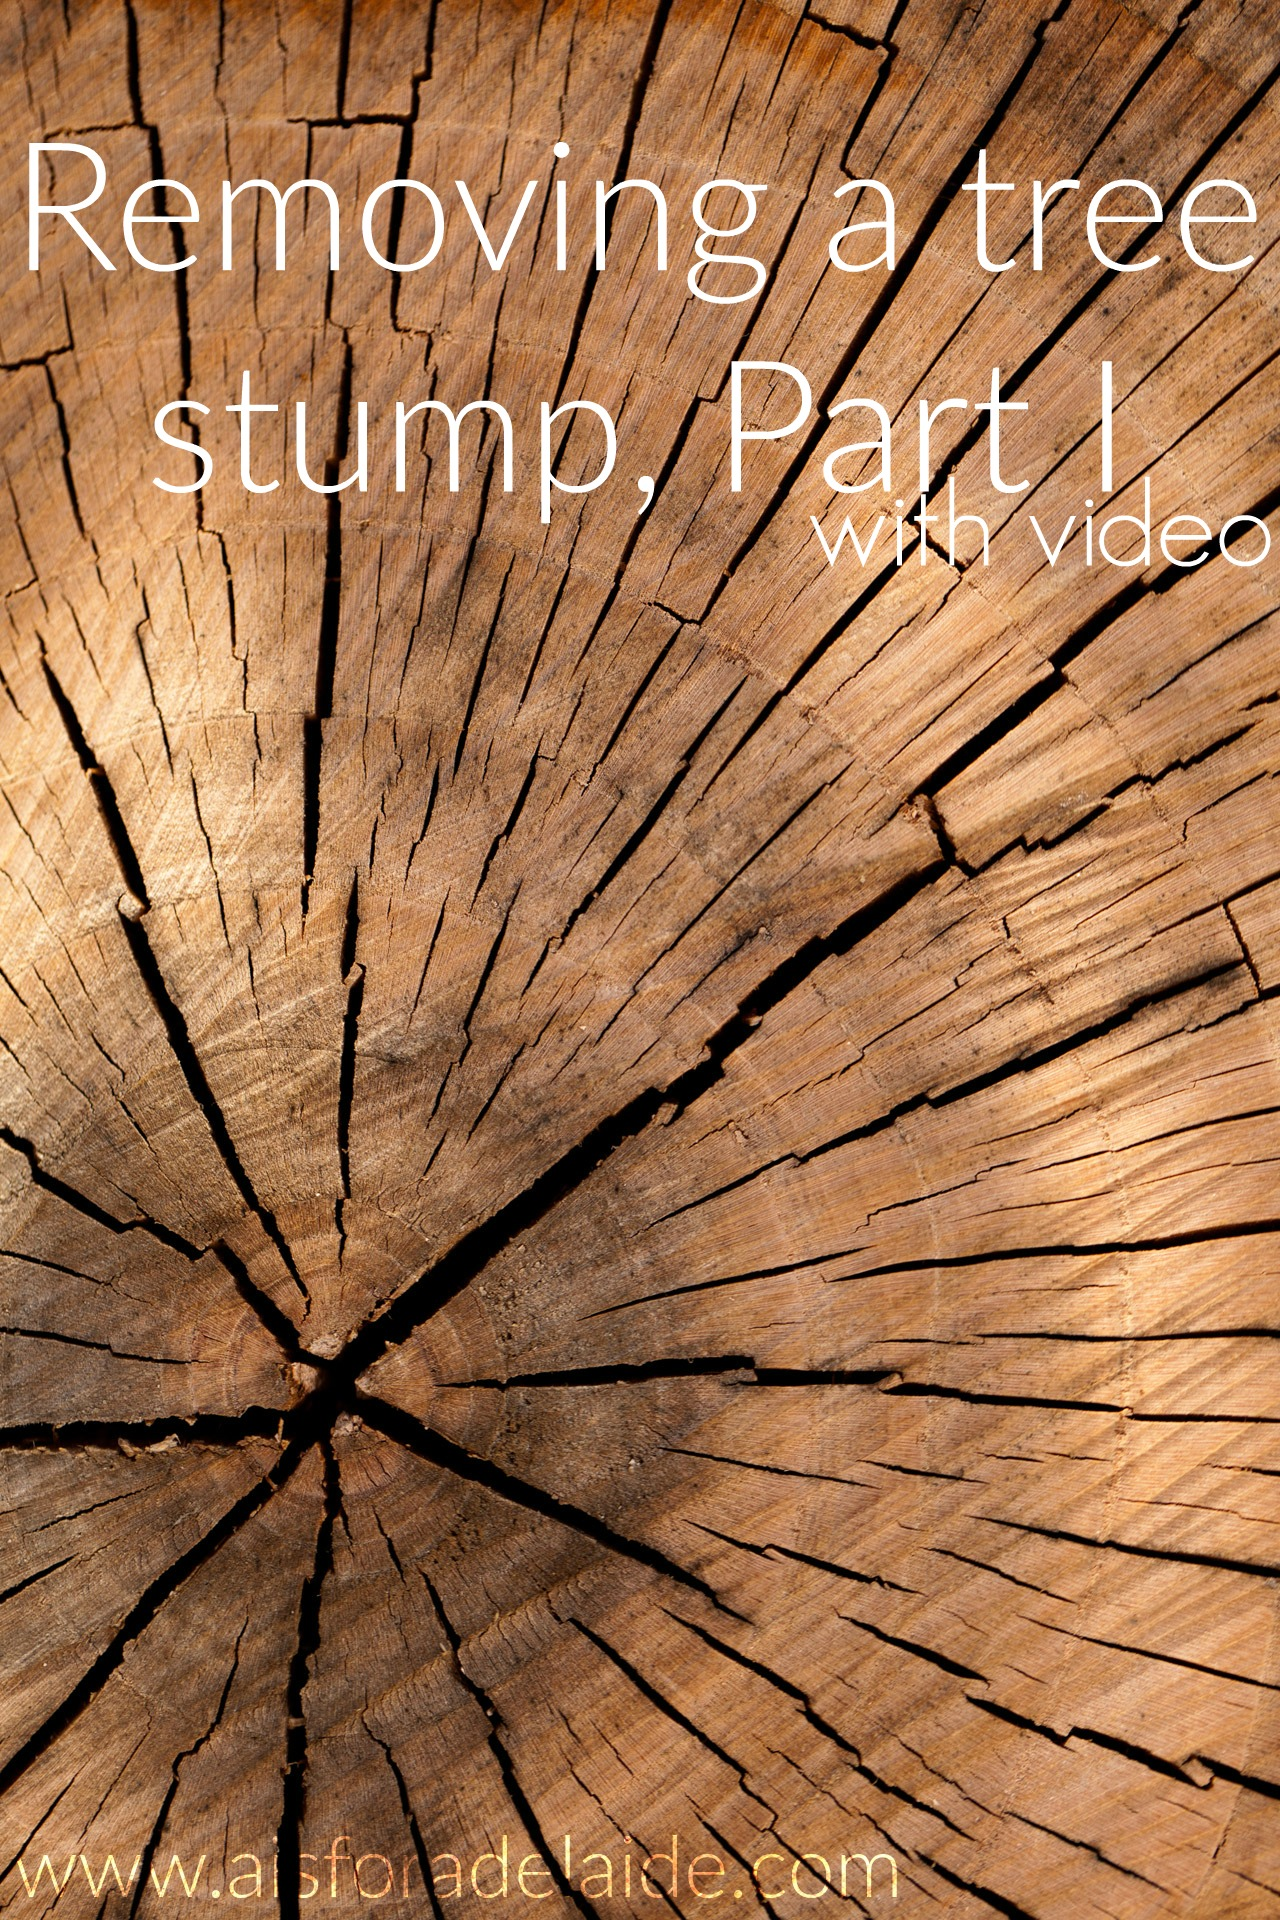 Removing a tree stump: Part 1, with video